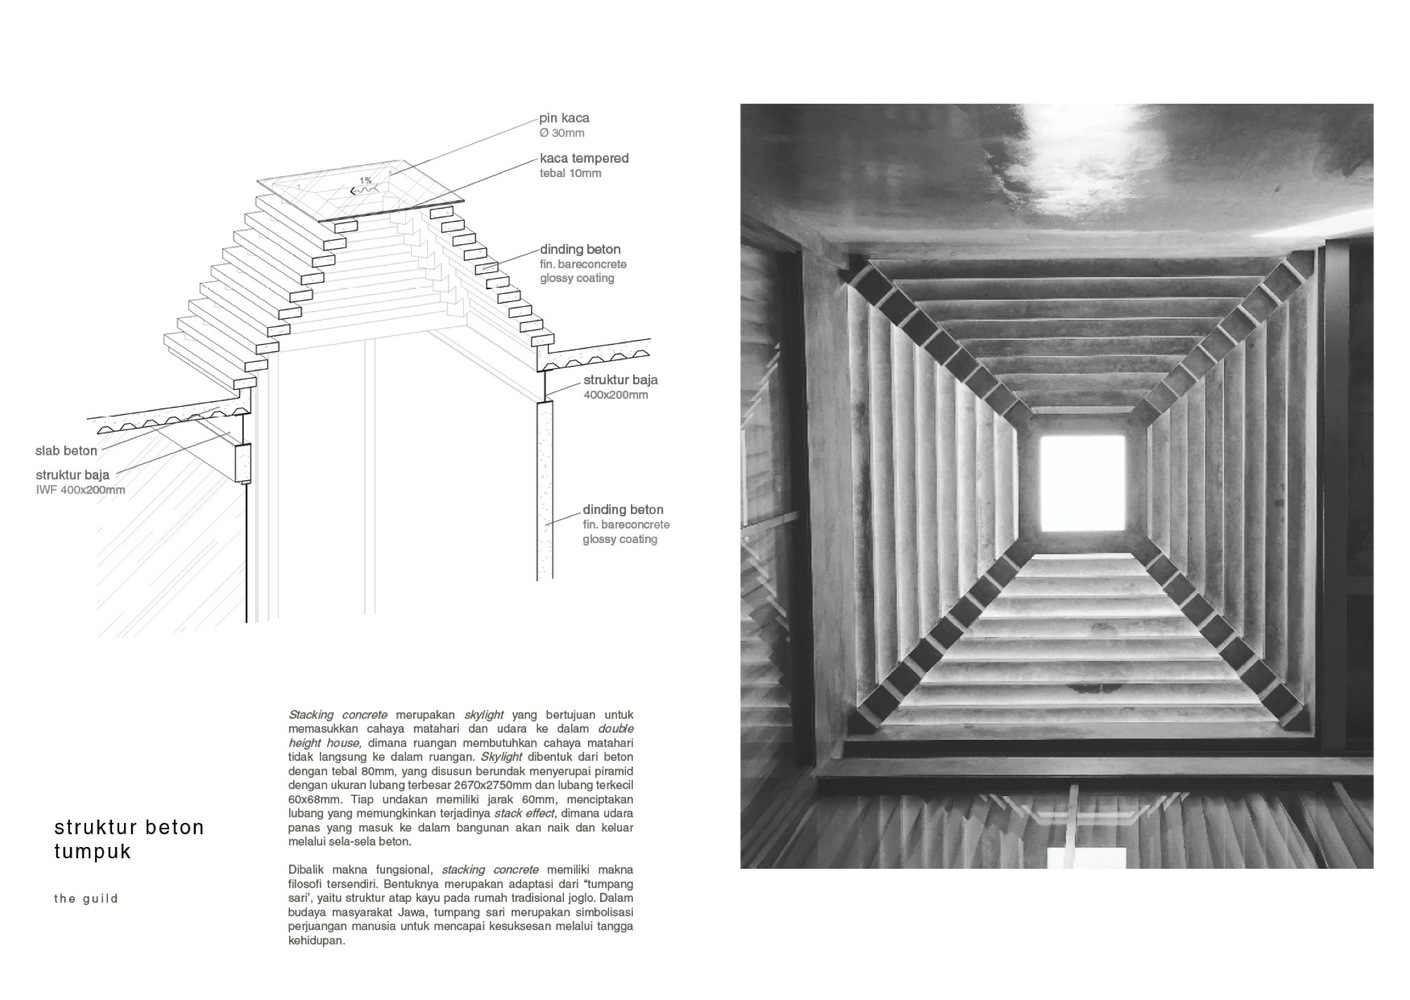 Struktur Atap Joglo Gallery Of The Guild Raw Architecture 47